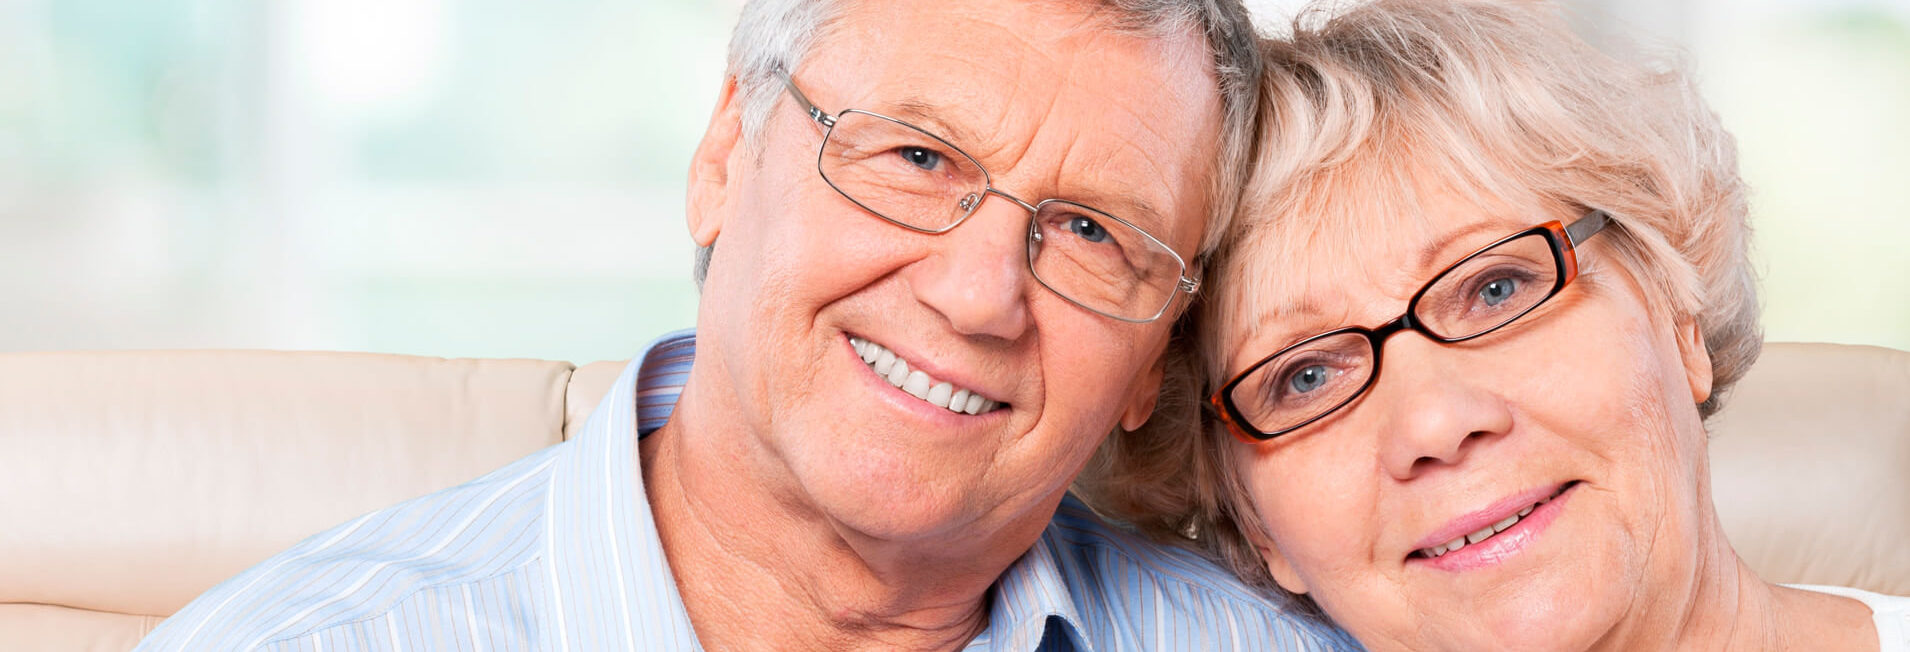 Quality Dental Implants in San Antonio